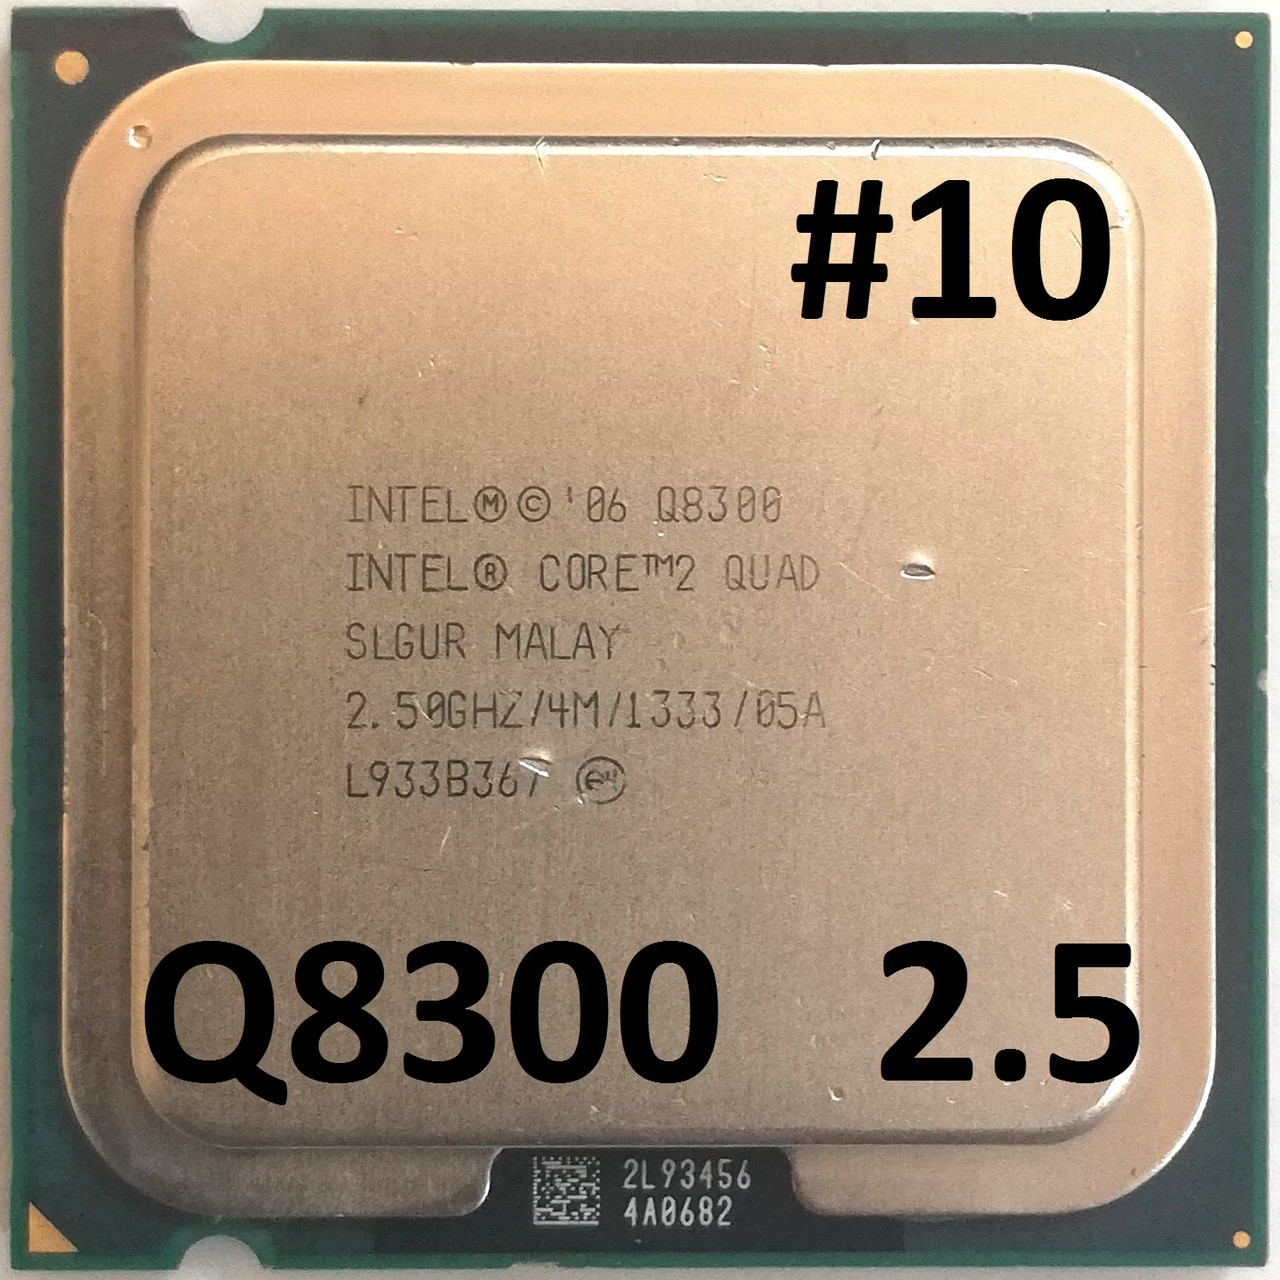 Процессор ЛОТ#10 Intel® Core™2 Quad Q8300 SLGUR 2.5GHz 4M Cache 1333 MHz FSB Socket 775 Б/У